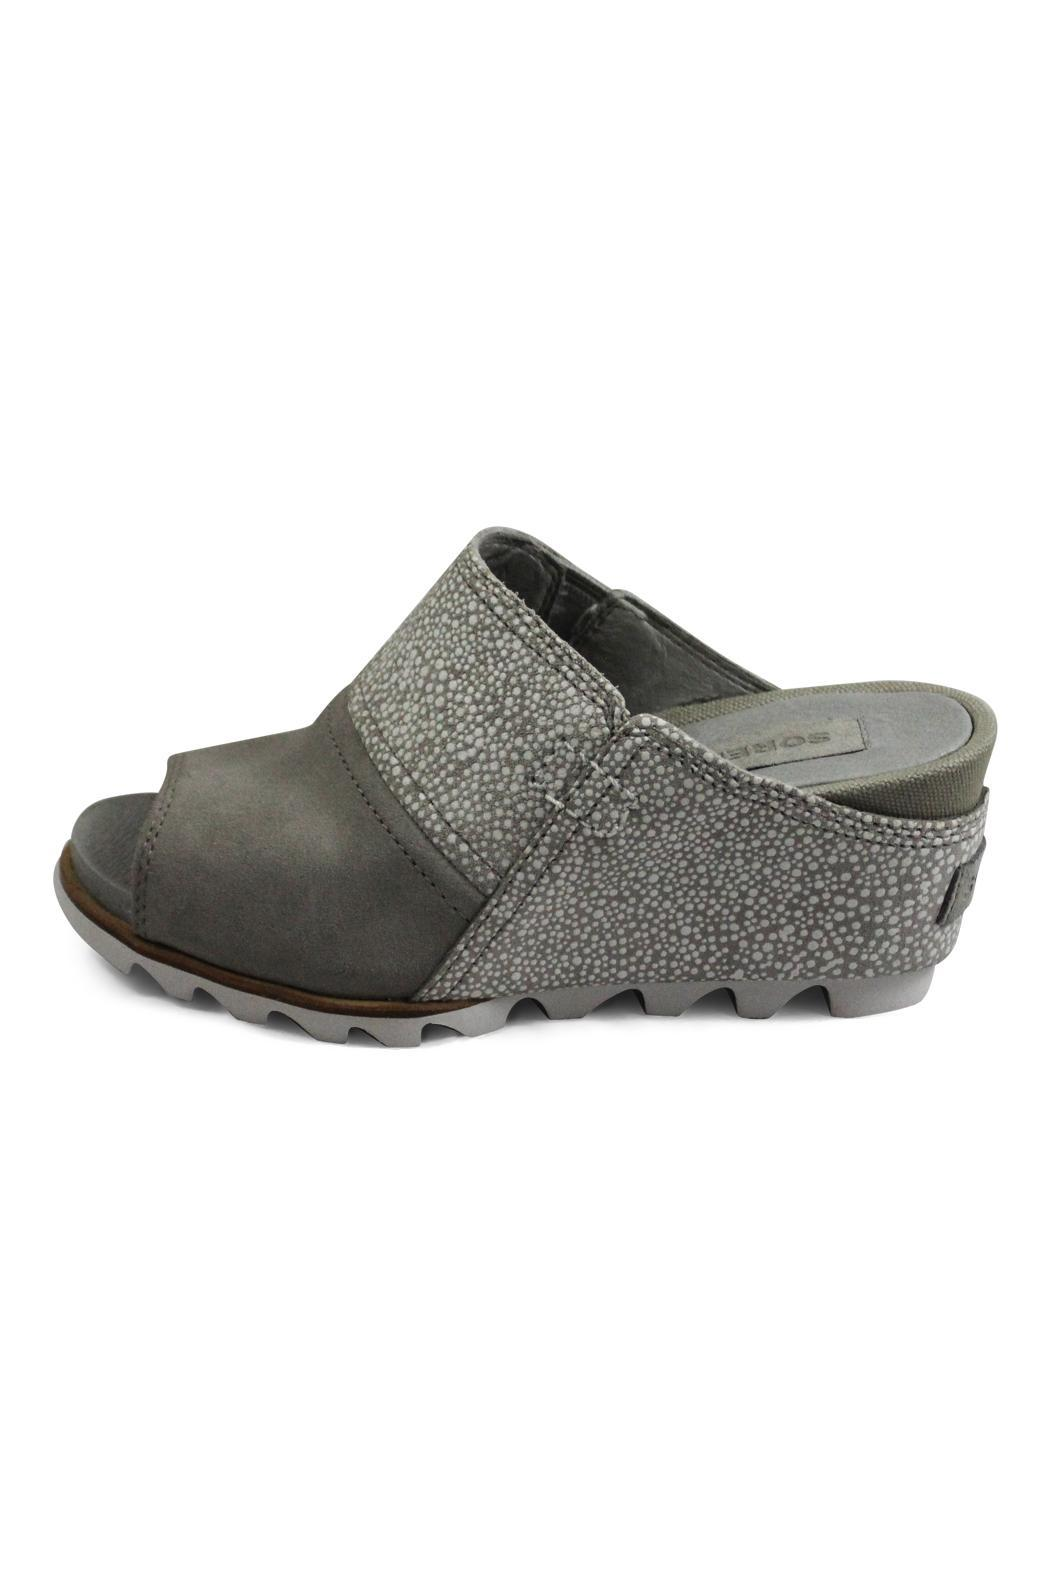 Sorel Grey Wedge Sandal - Main Image